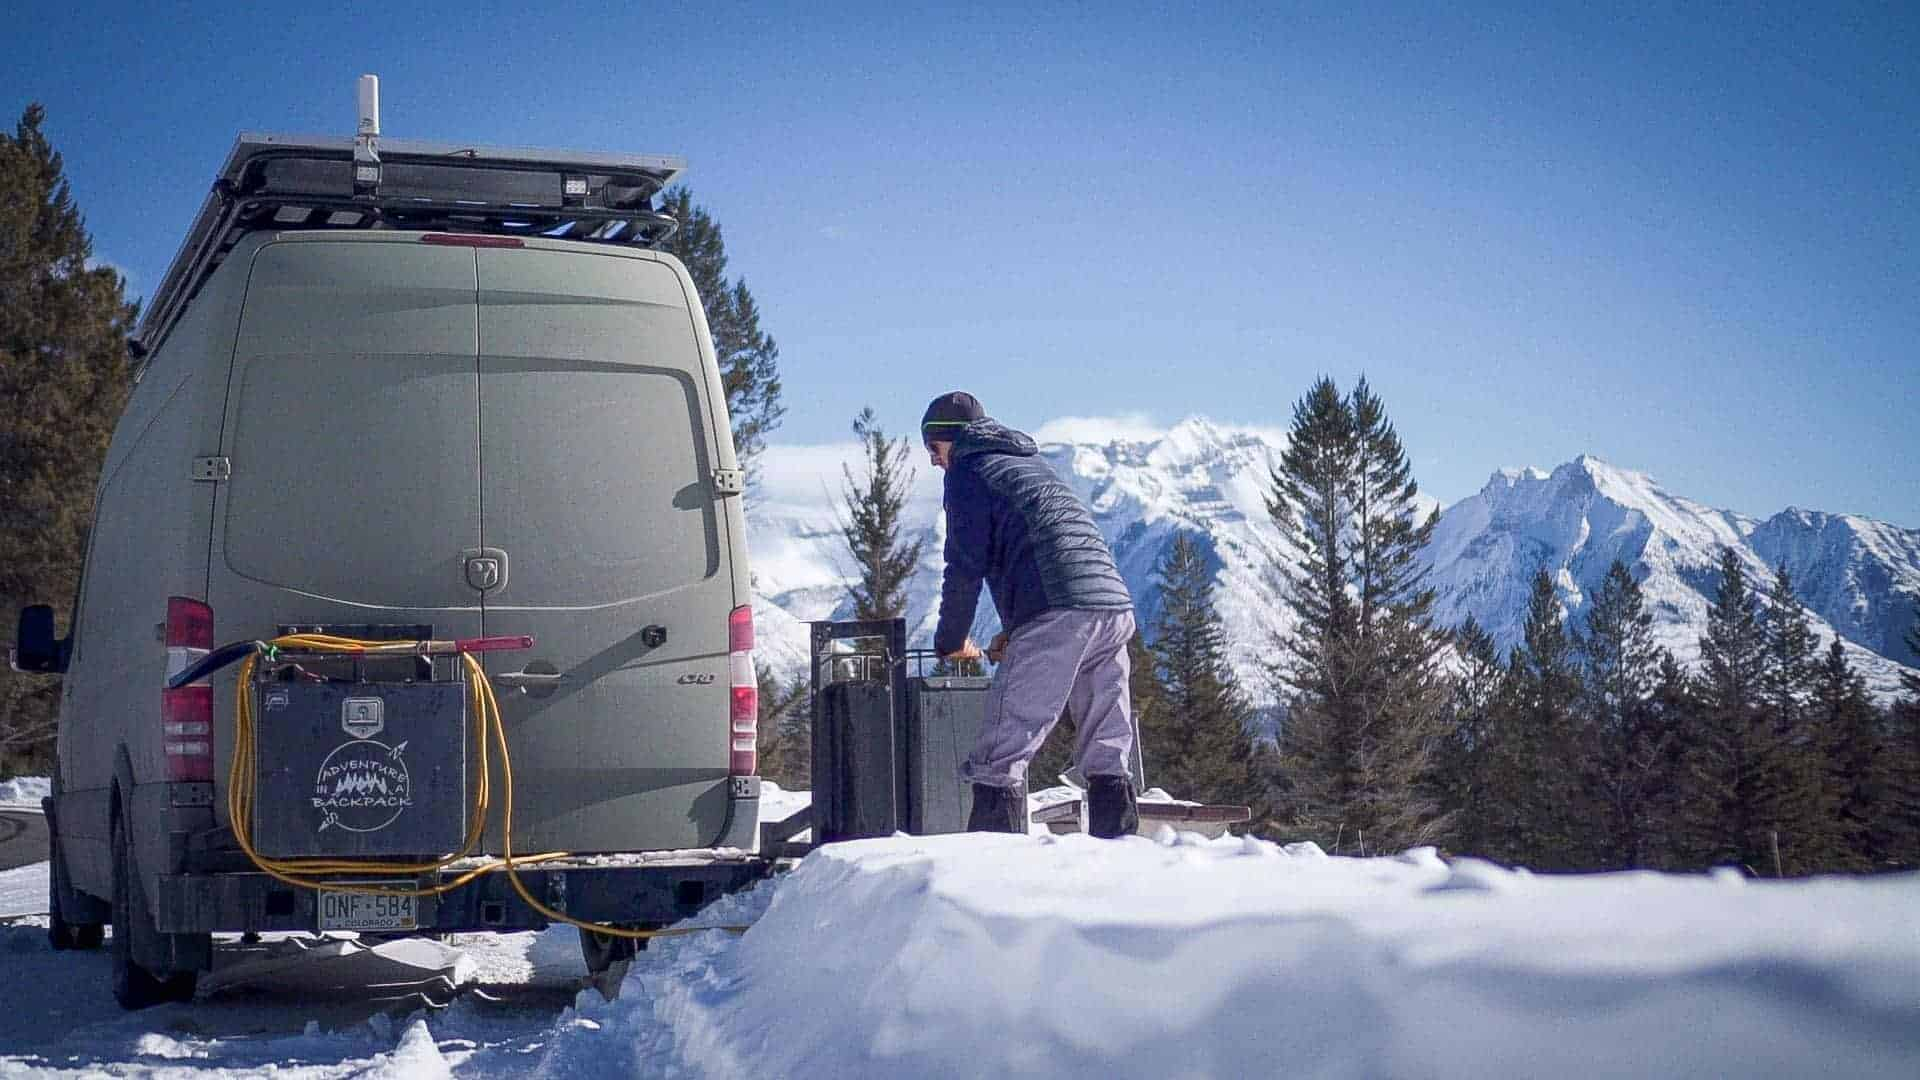 winter vanlife more than skiing powder banff-11